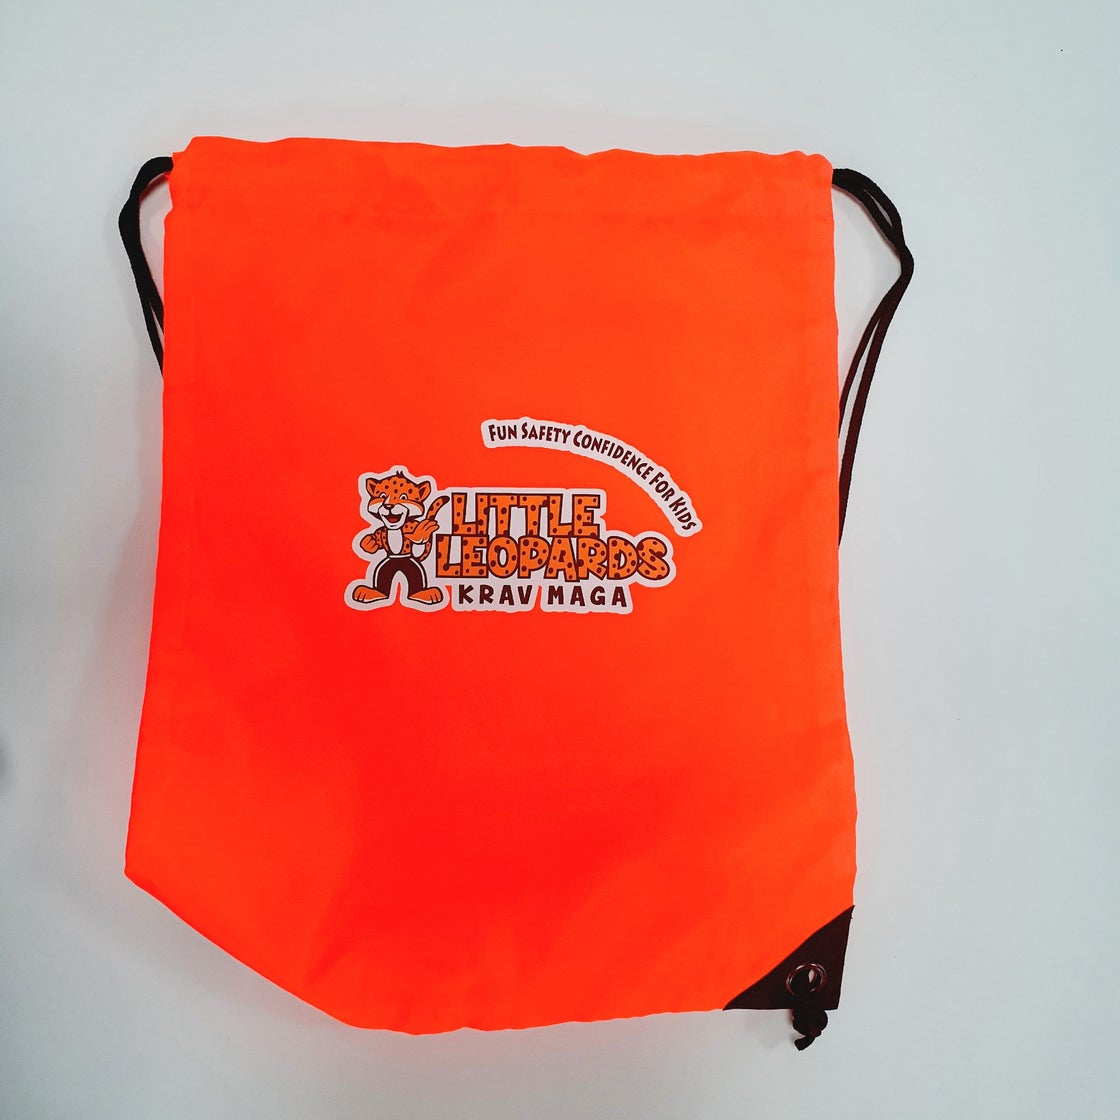 Image of Little Leopards 'Be Seen' training Sack 'Collection Only'